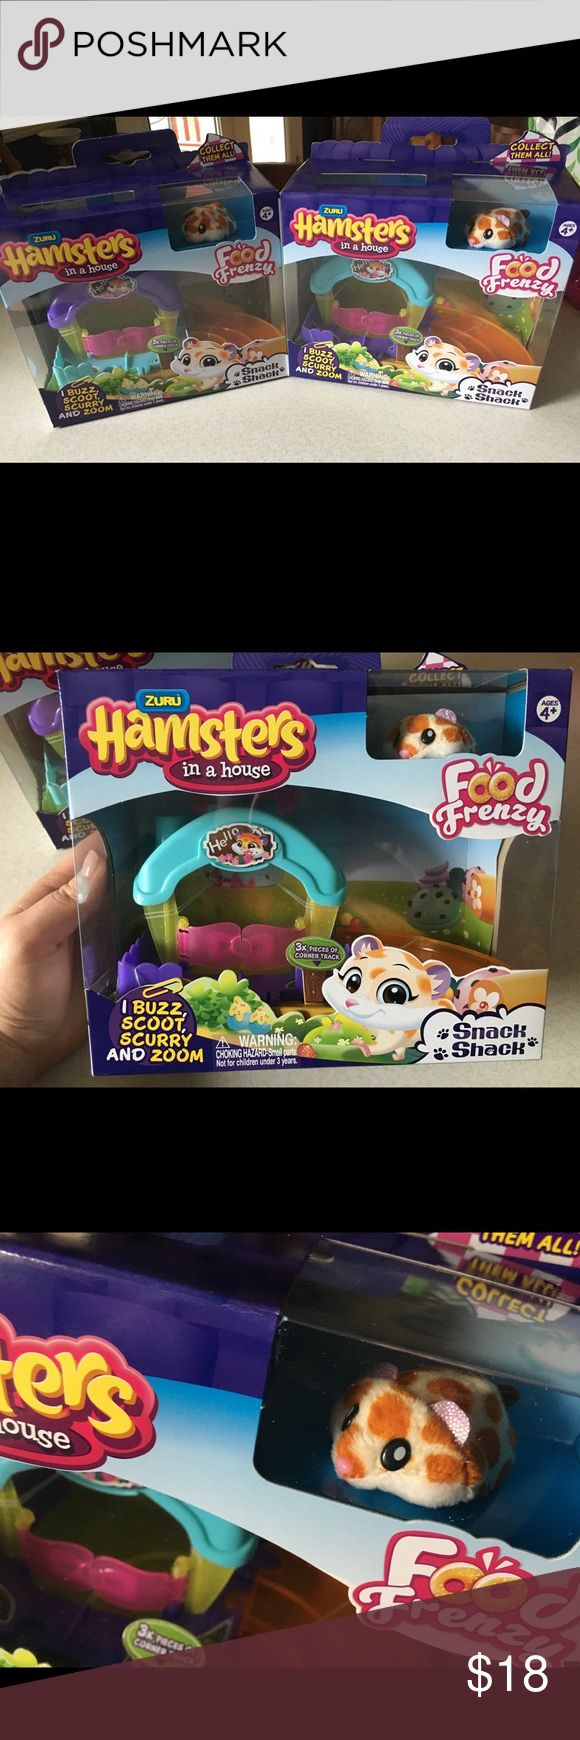 Zuru Hamsters in a house Nibbles Food Frenzy This listing is for one of the Zuru Hamsters in a house Food Frenzy featuring the cute little hamster Nibbles. In the box features Nibbles, 1 snack shack, and 3 curved tracks. Hot toy 2017. $18 each. Have 2 available. Price firm. Zuru Other